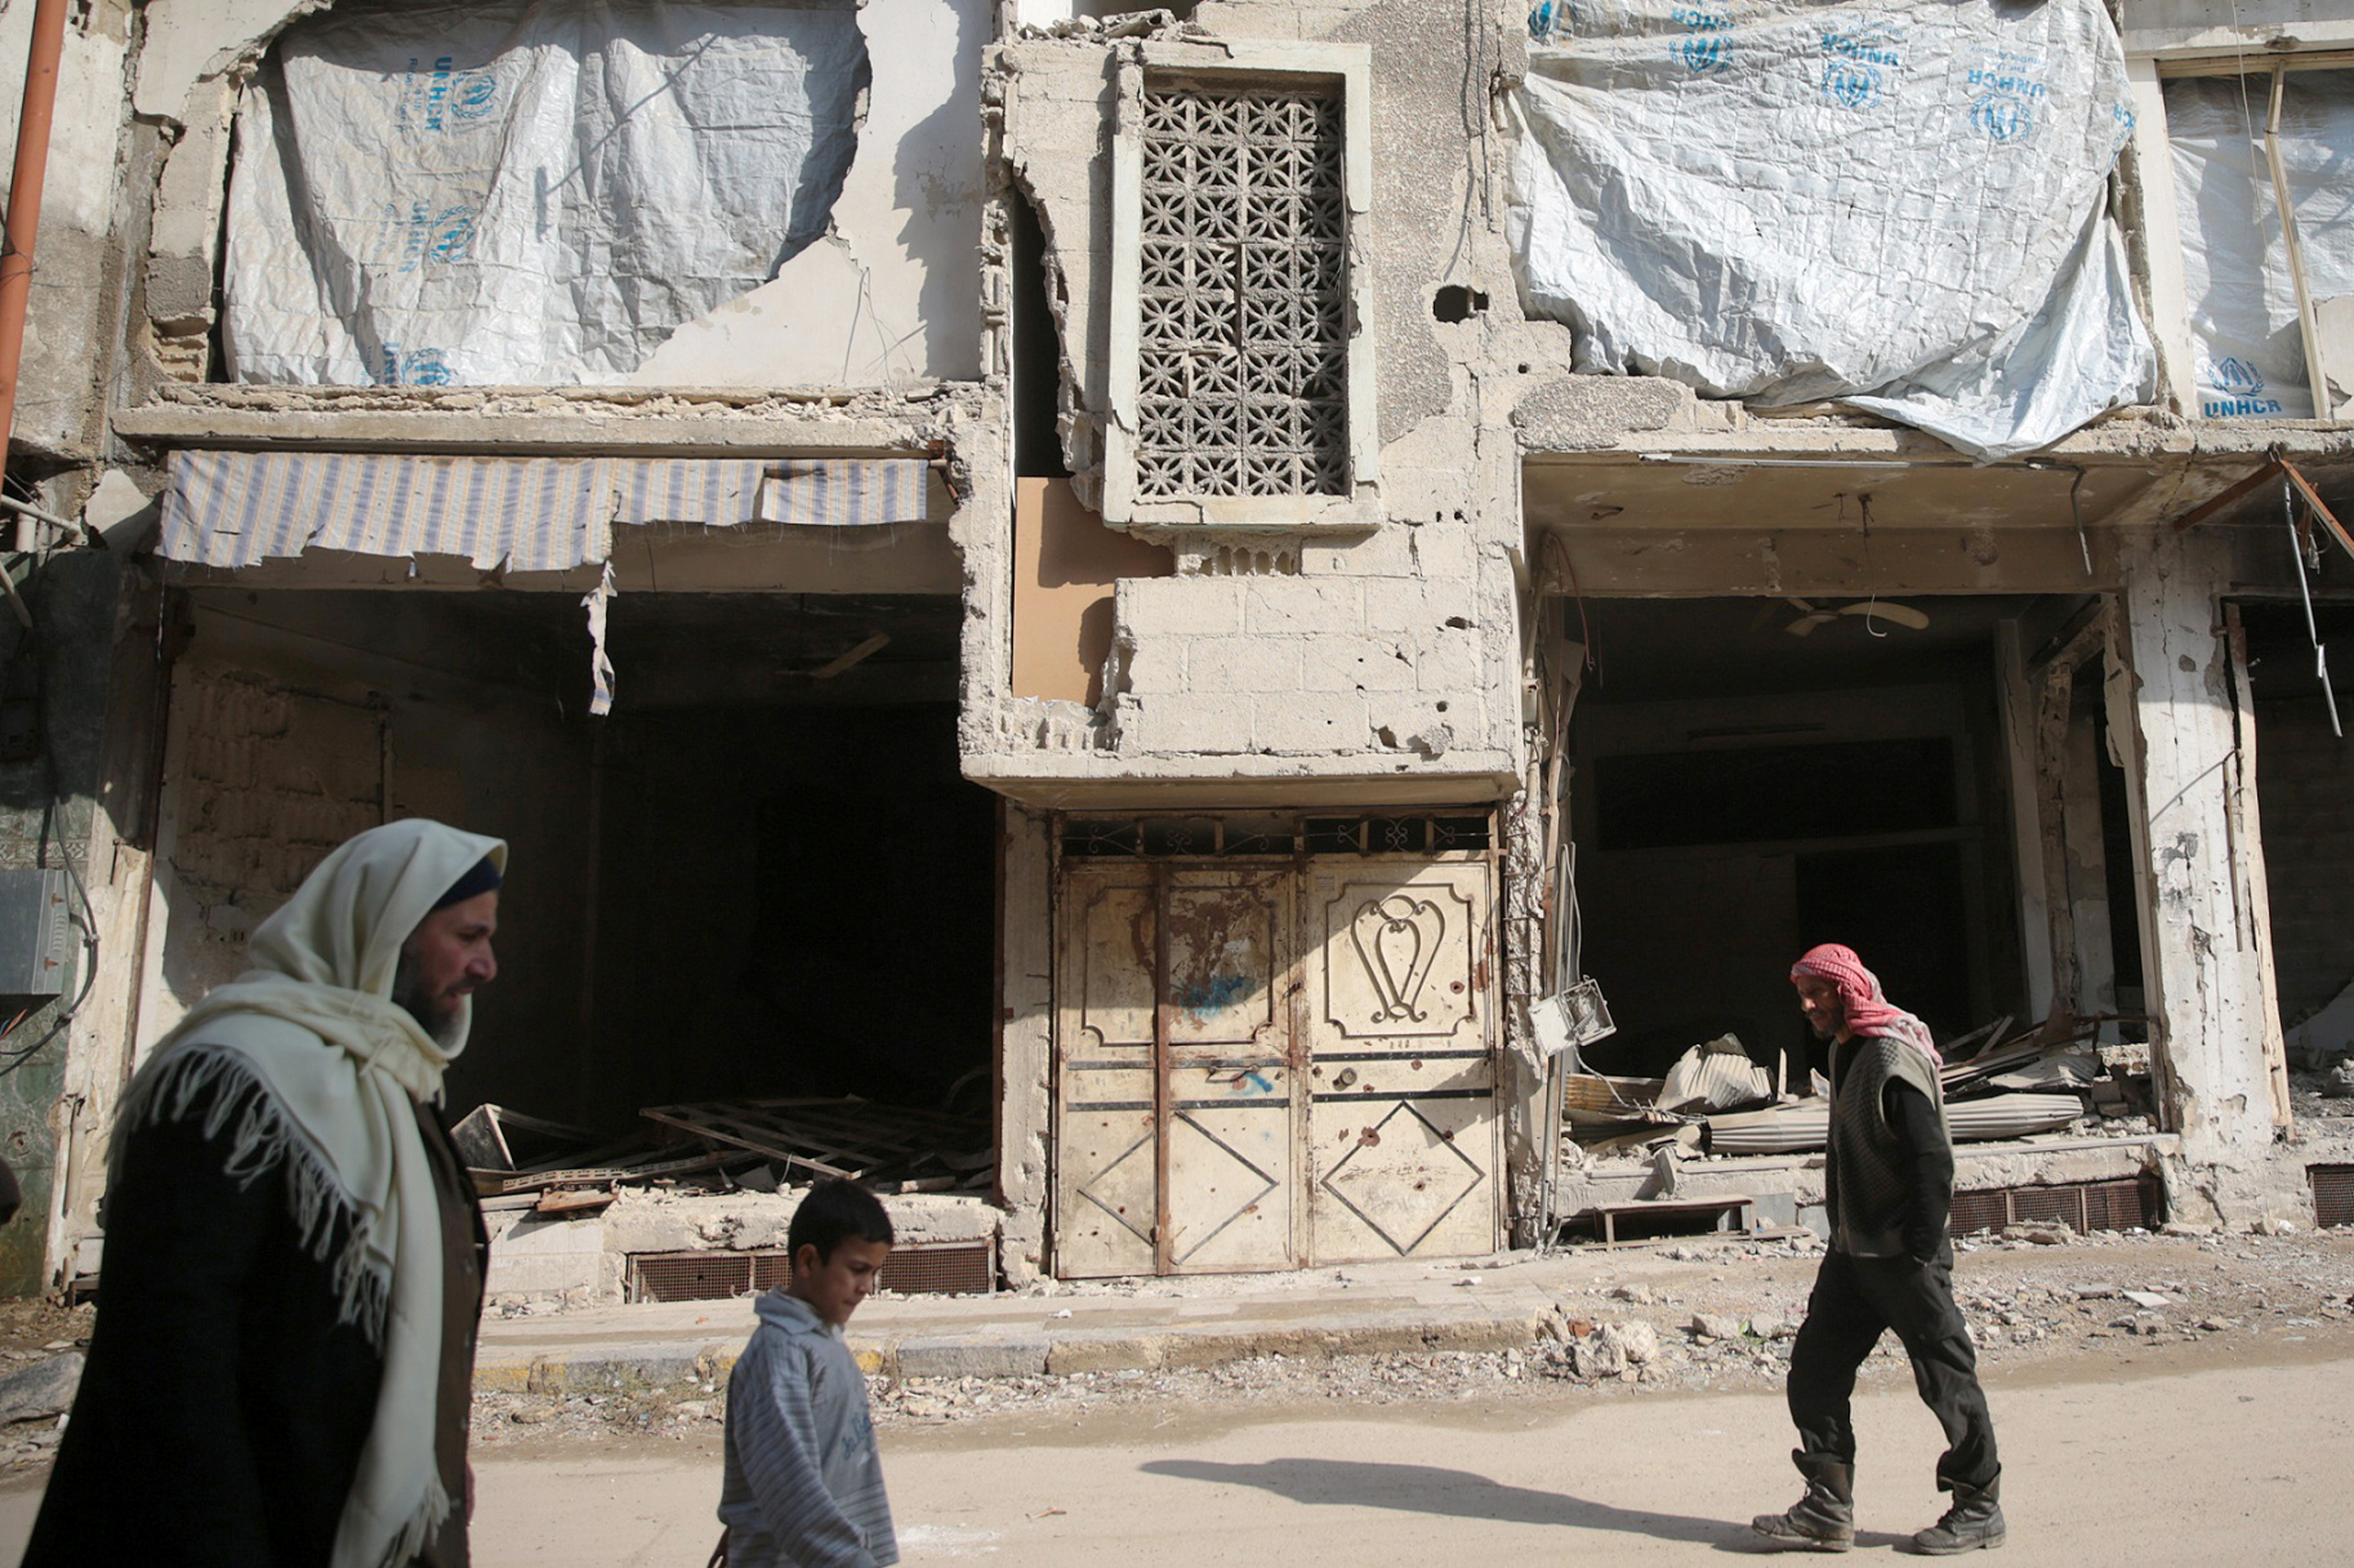 People walk past a damaged building in the eastern Damascus suburb of Ghouta, Syria.